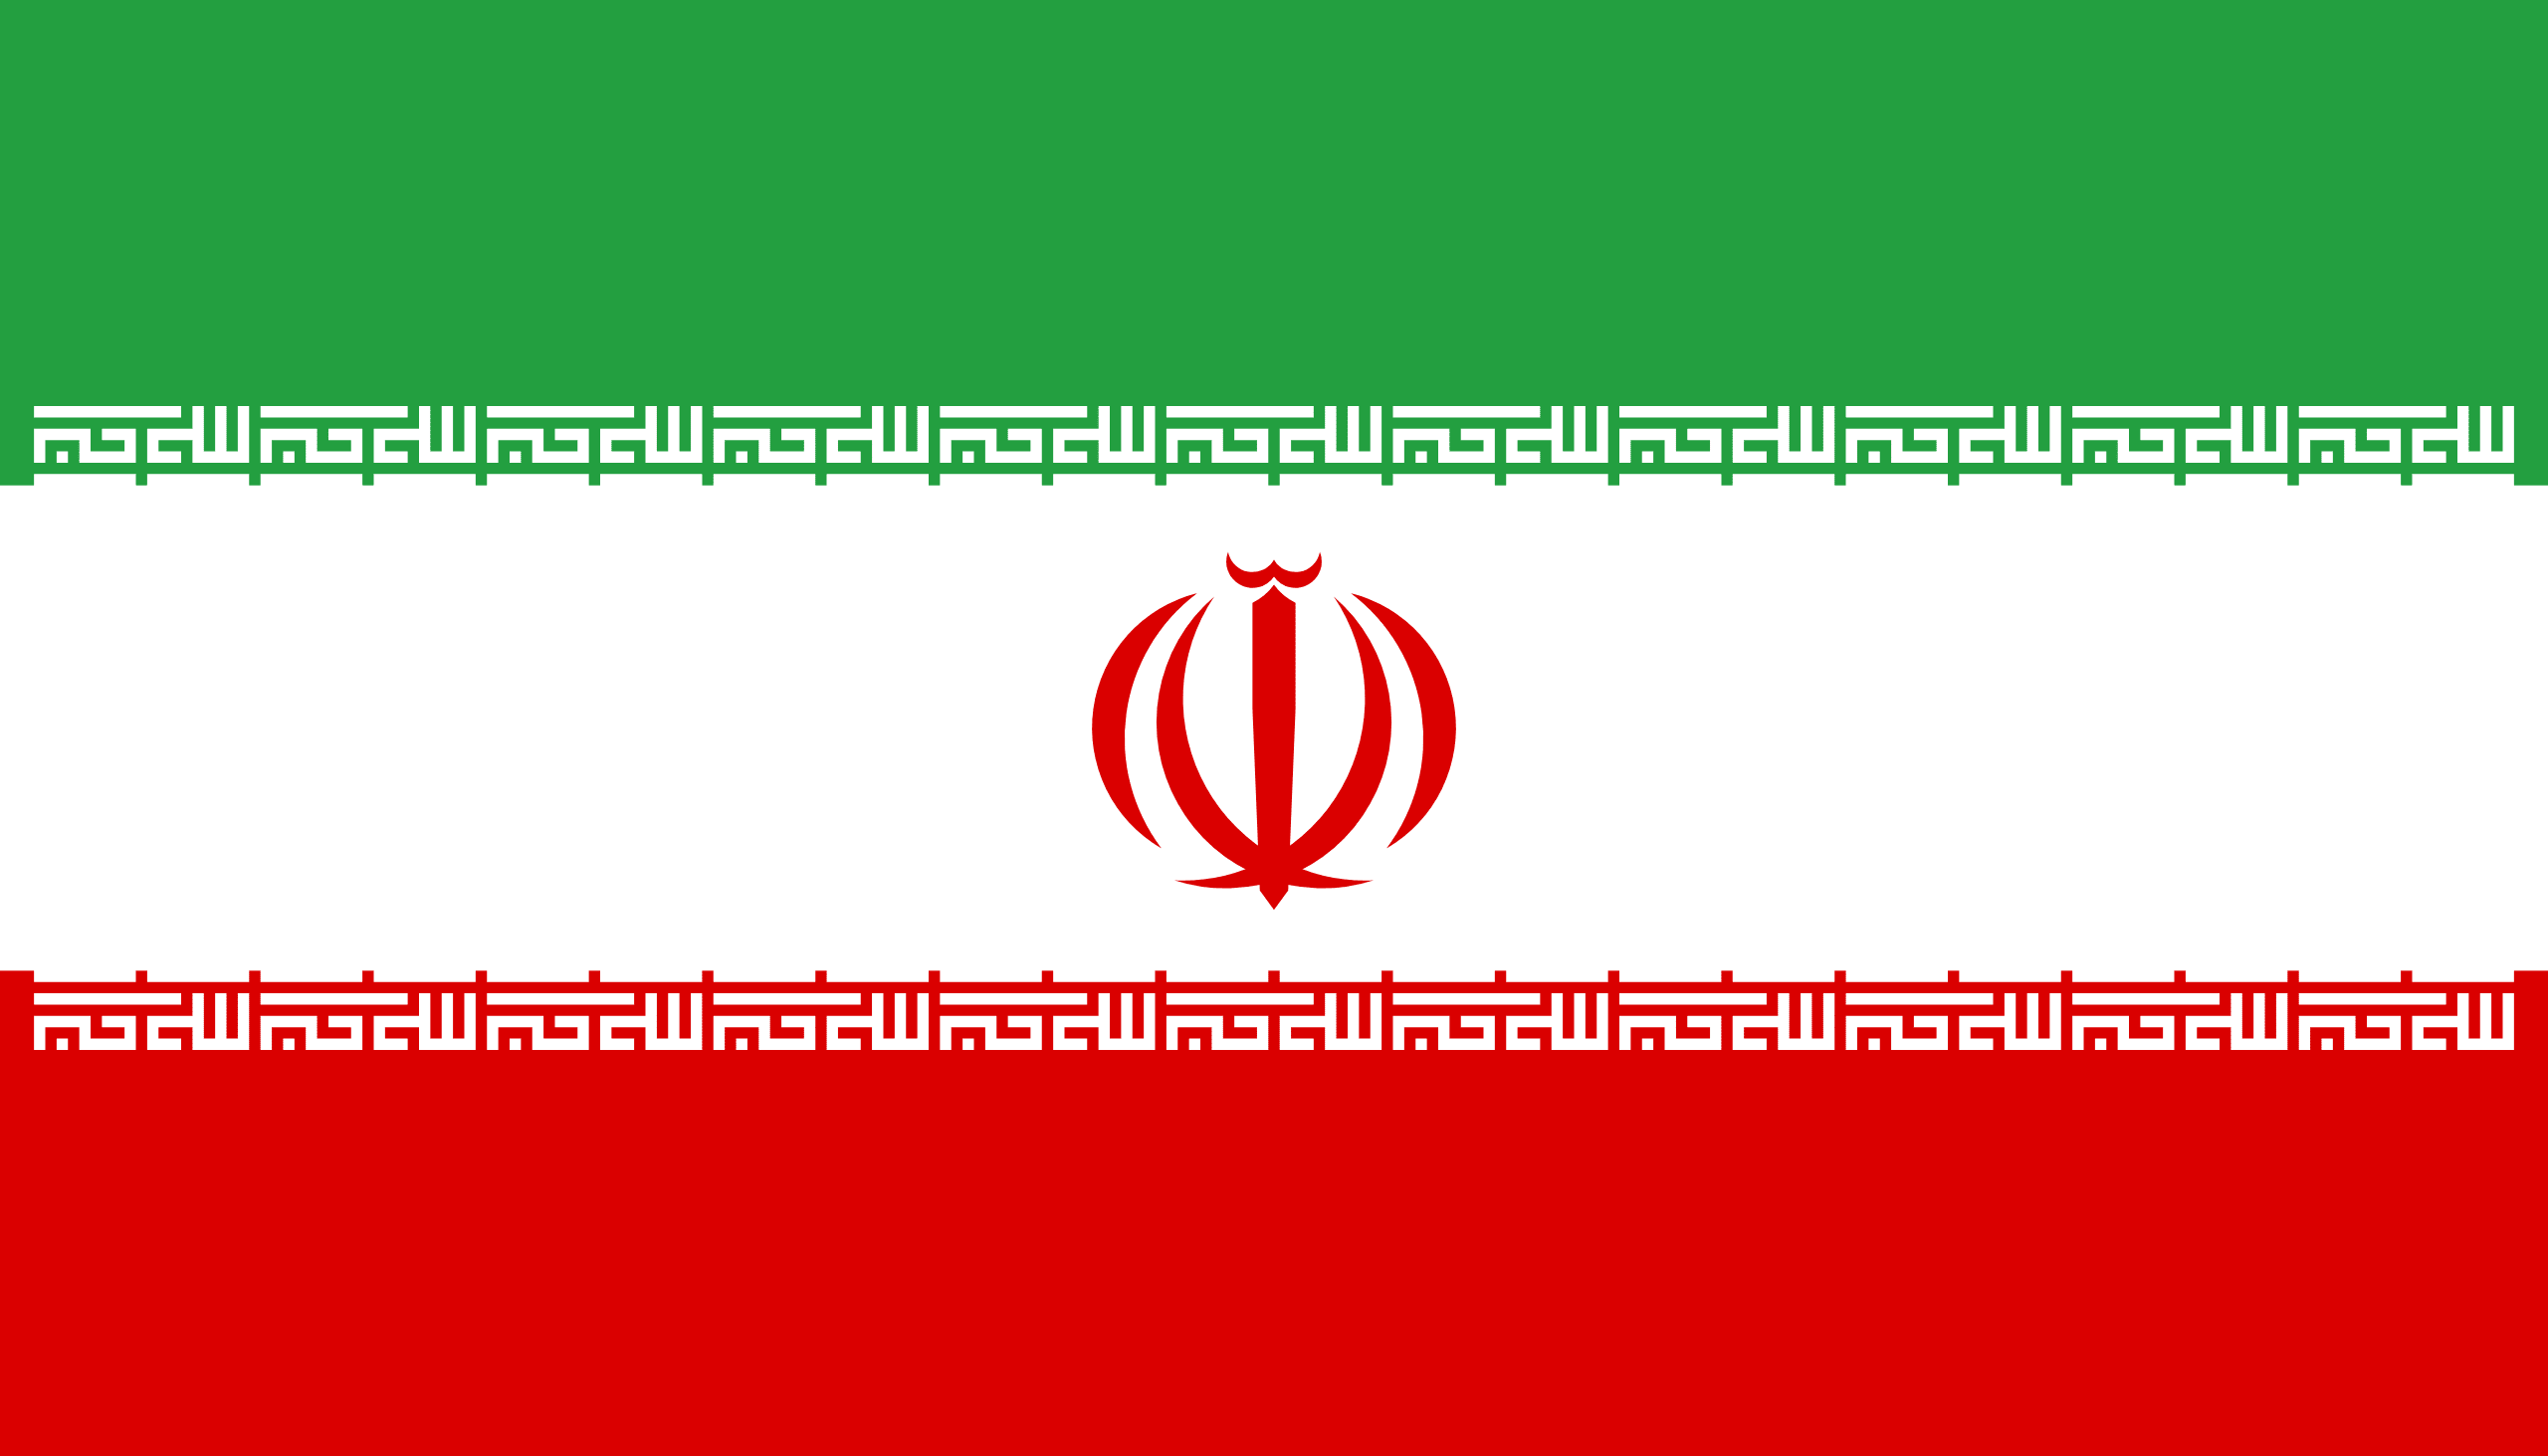 Iran flags of countries download a flag or use it on websites biocorpaavc